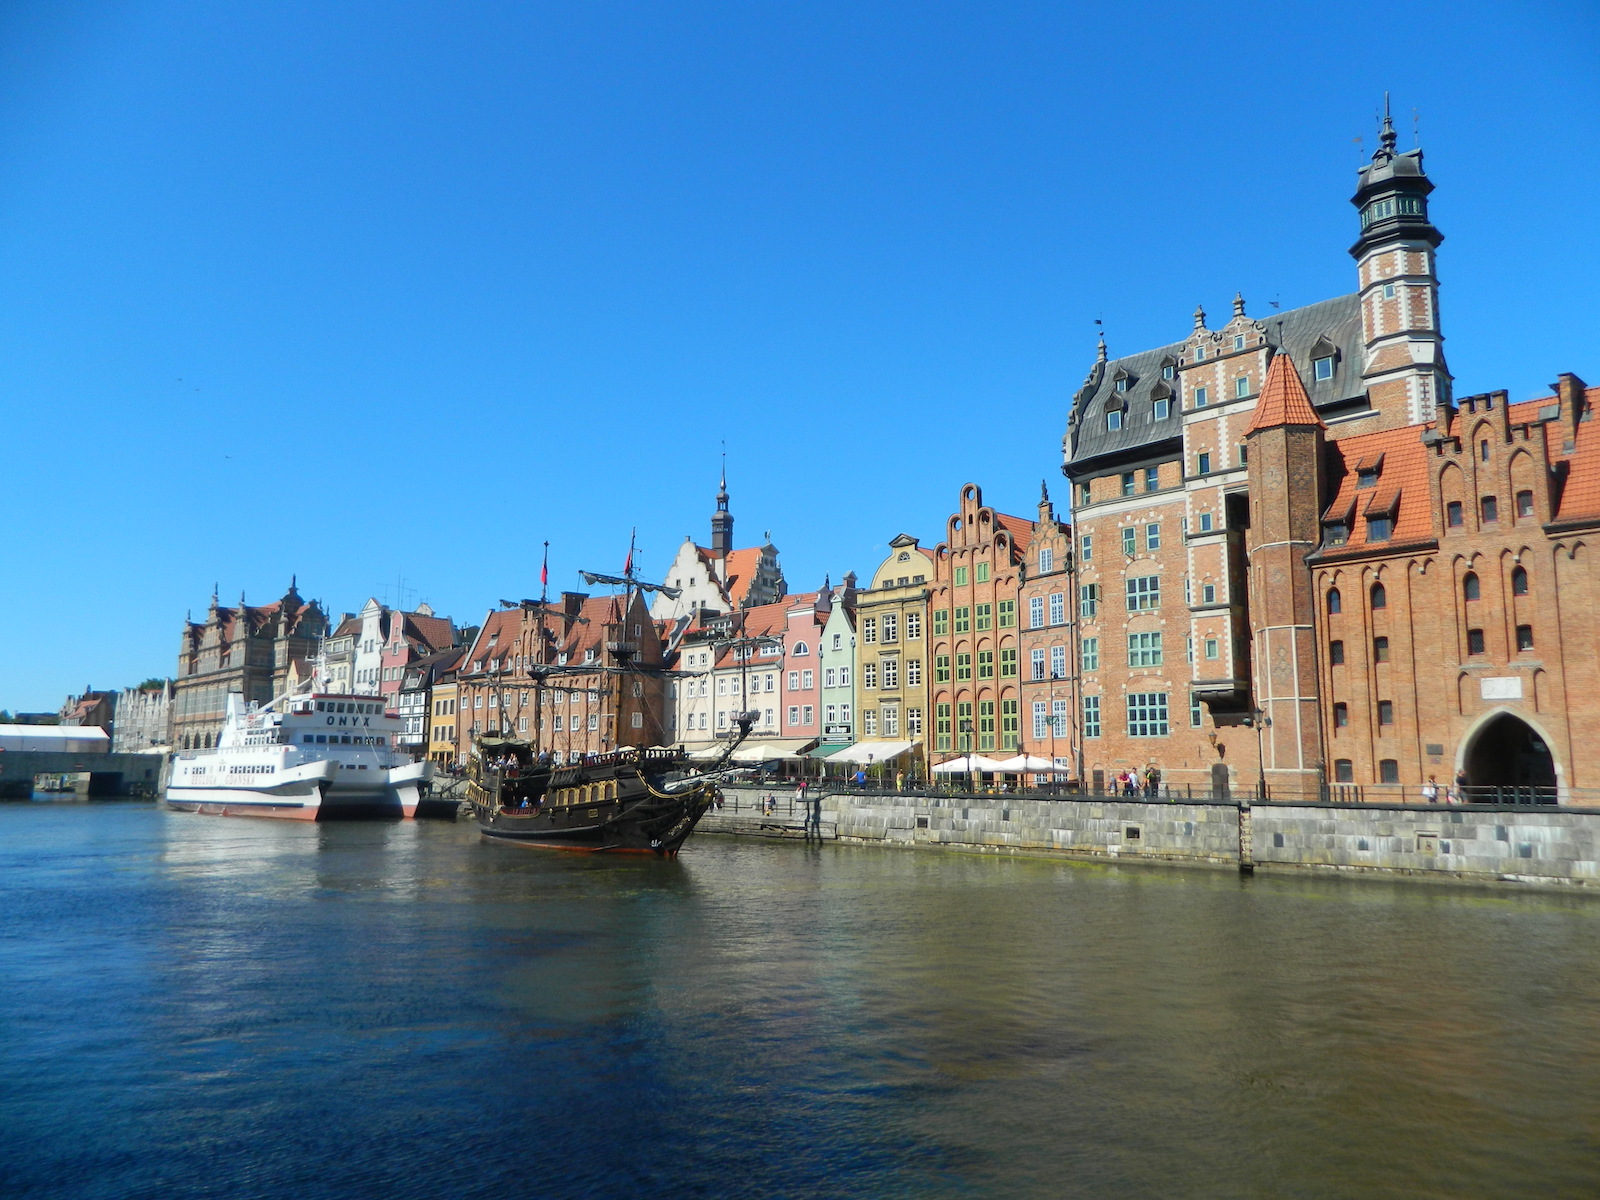 View of Gdańsk, Poland